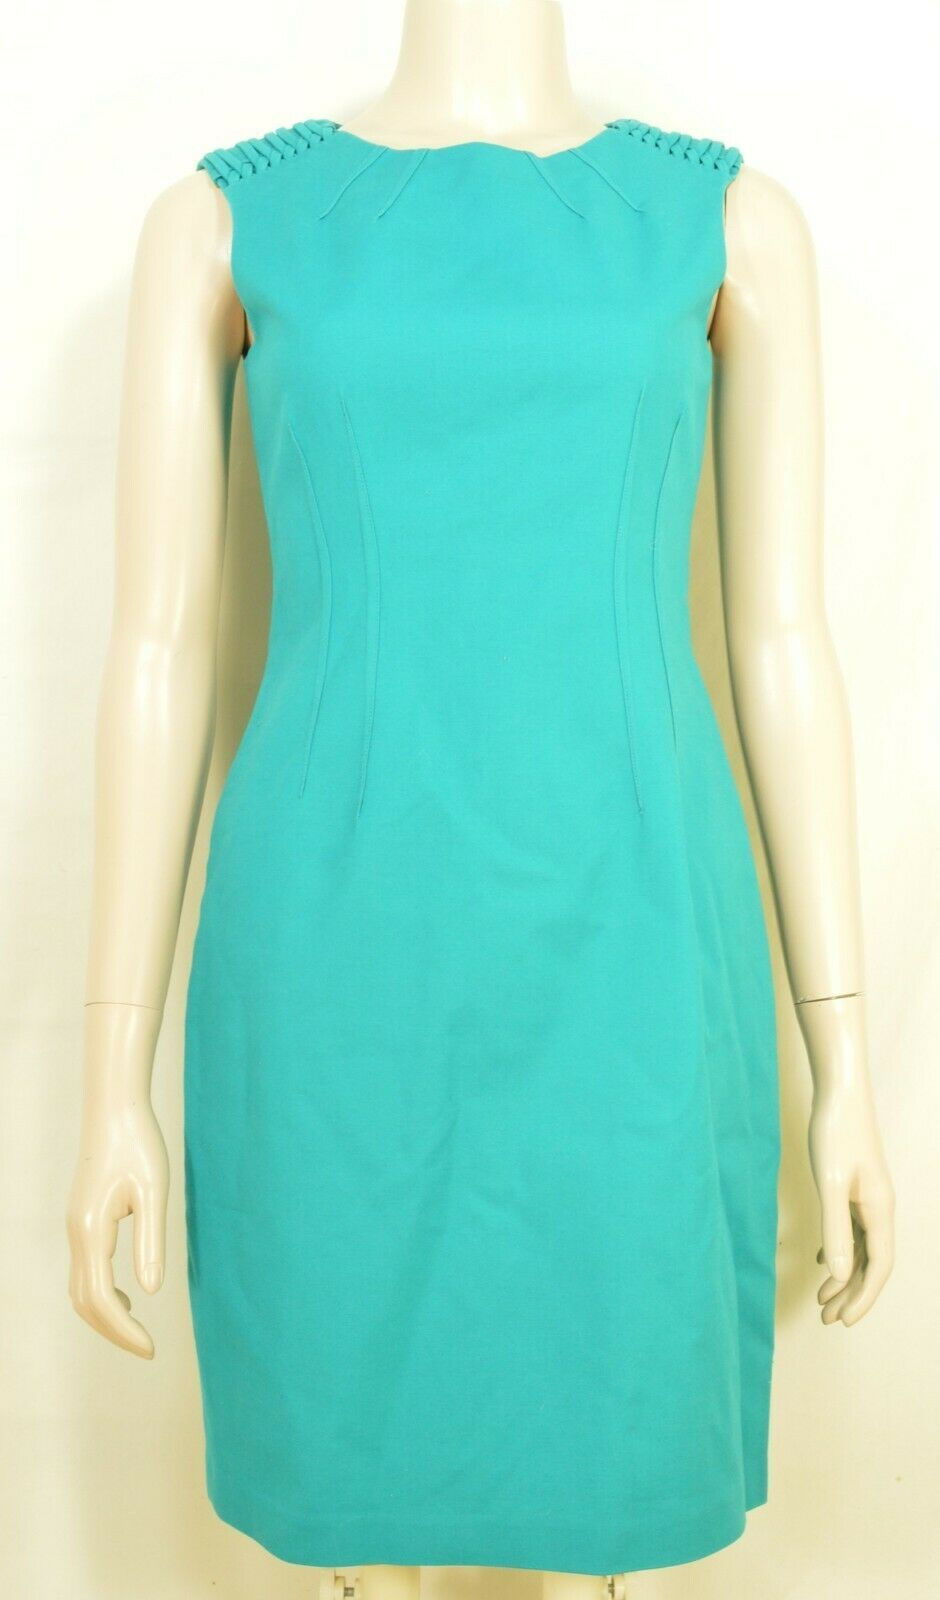 Elie Tahari dress SZ 2 LOT of 2  1 turquoise 1 floral sheath career chic lined image 11